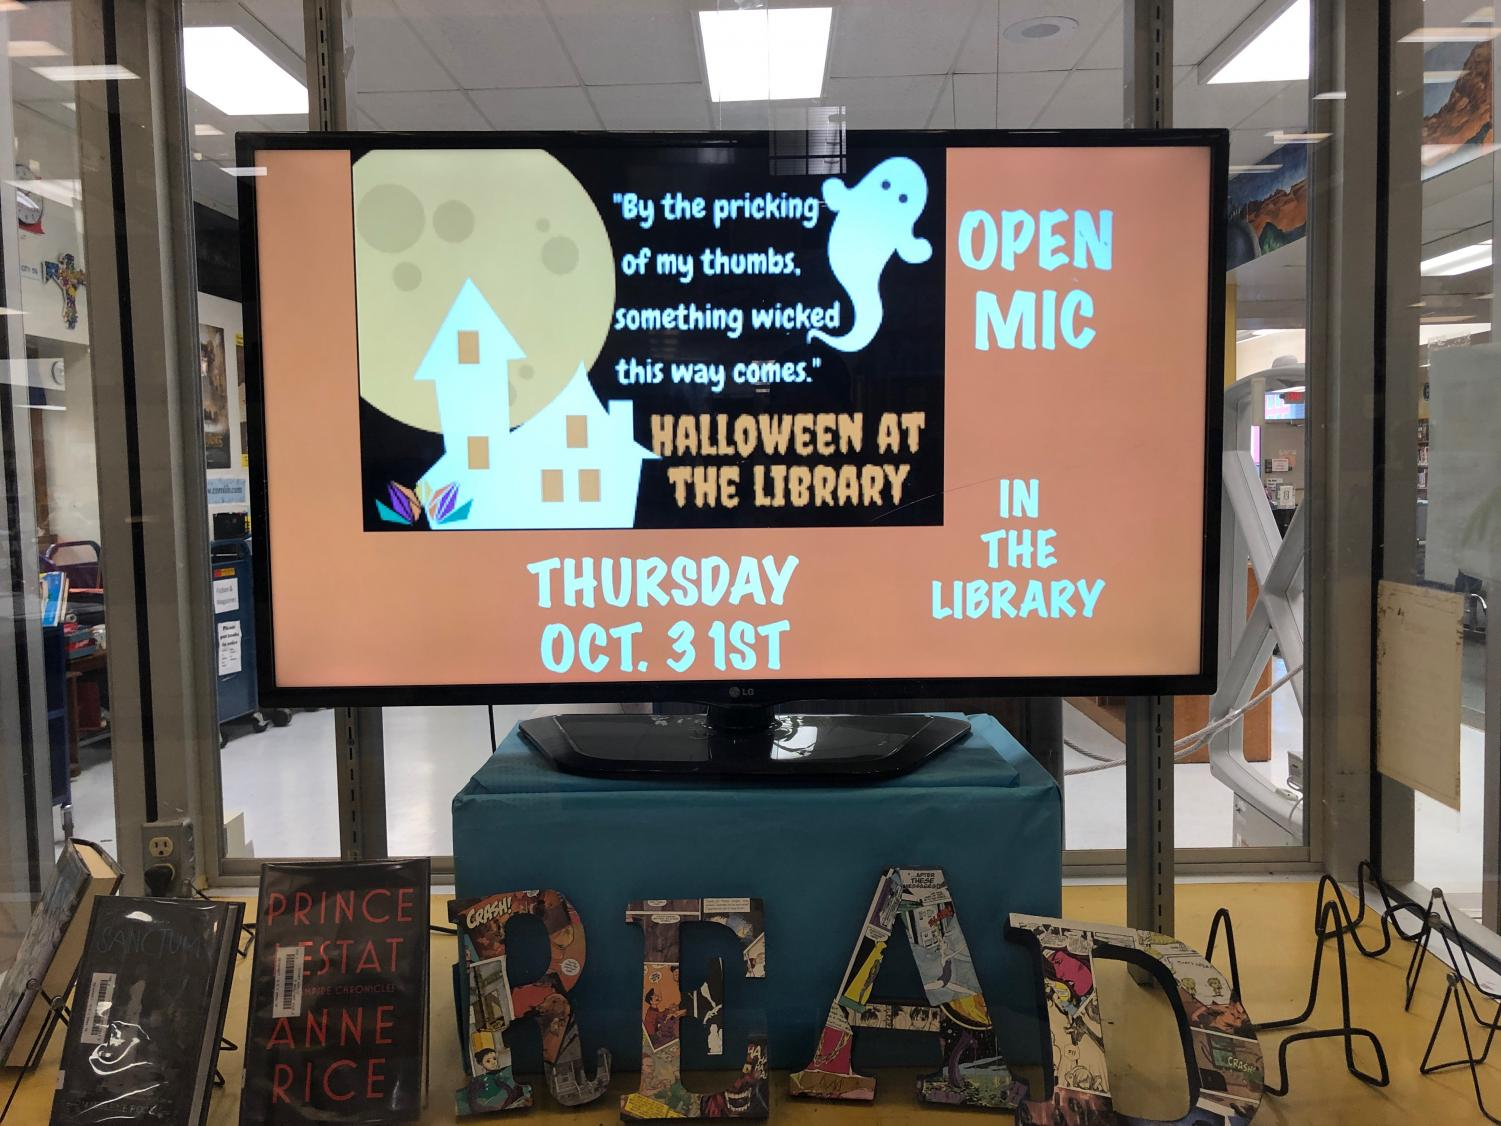 The library invites all interested students and staff to perform poetry, play music, deliver jokes, tell stories, or surprise the crowd with other acts during the Halloween open mic. Anyone is also able to attend for the purpose of watching.